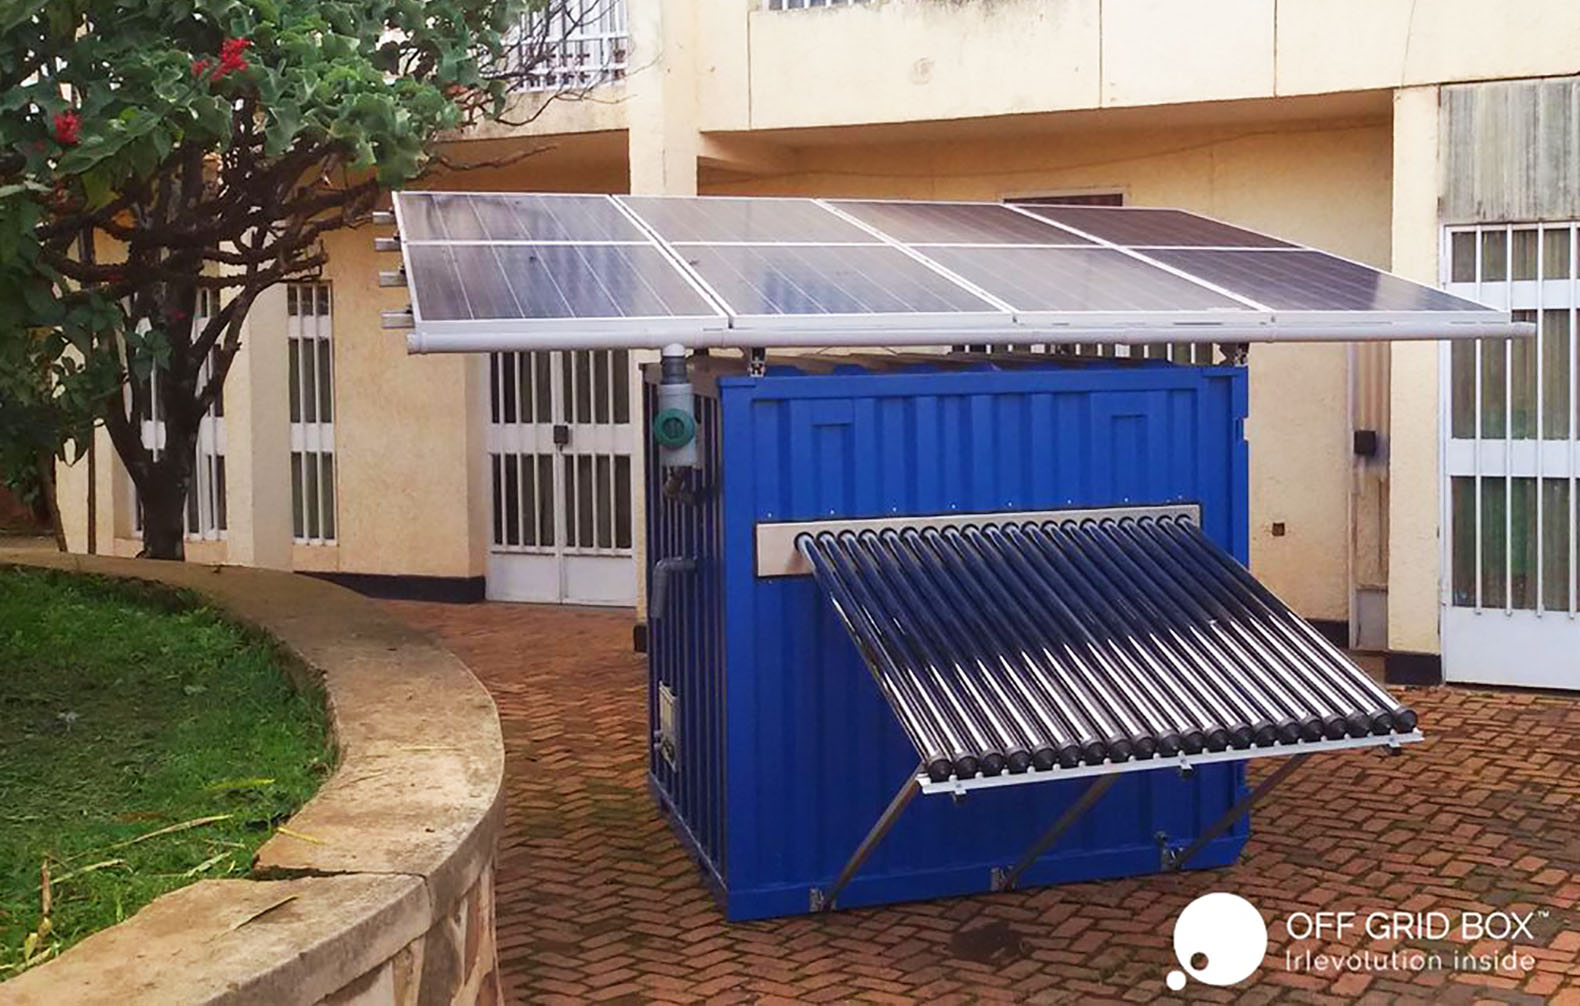 Compact Offgridbox Provides Drinking Water And Power Where